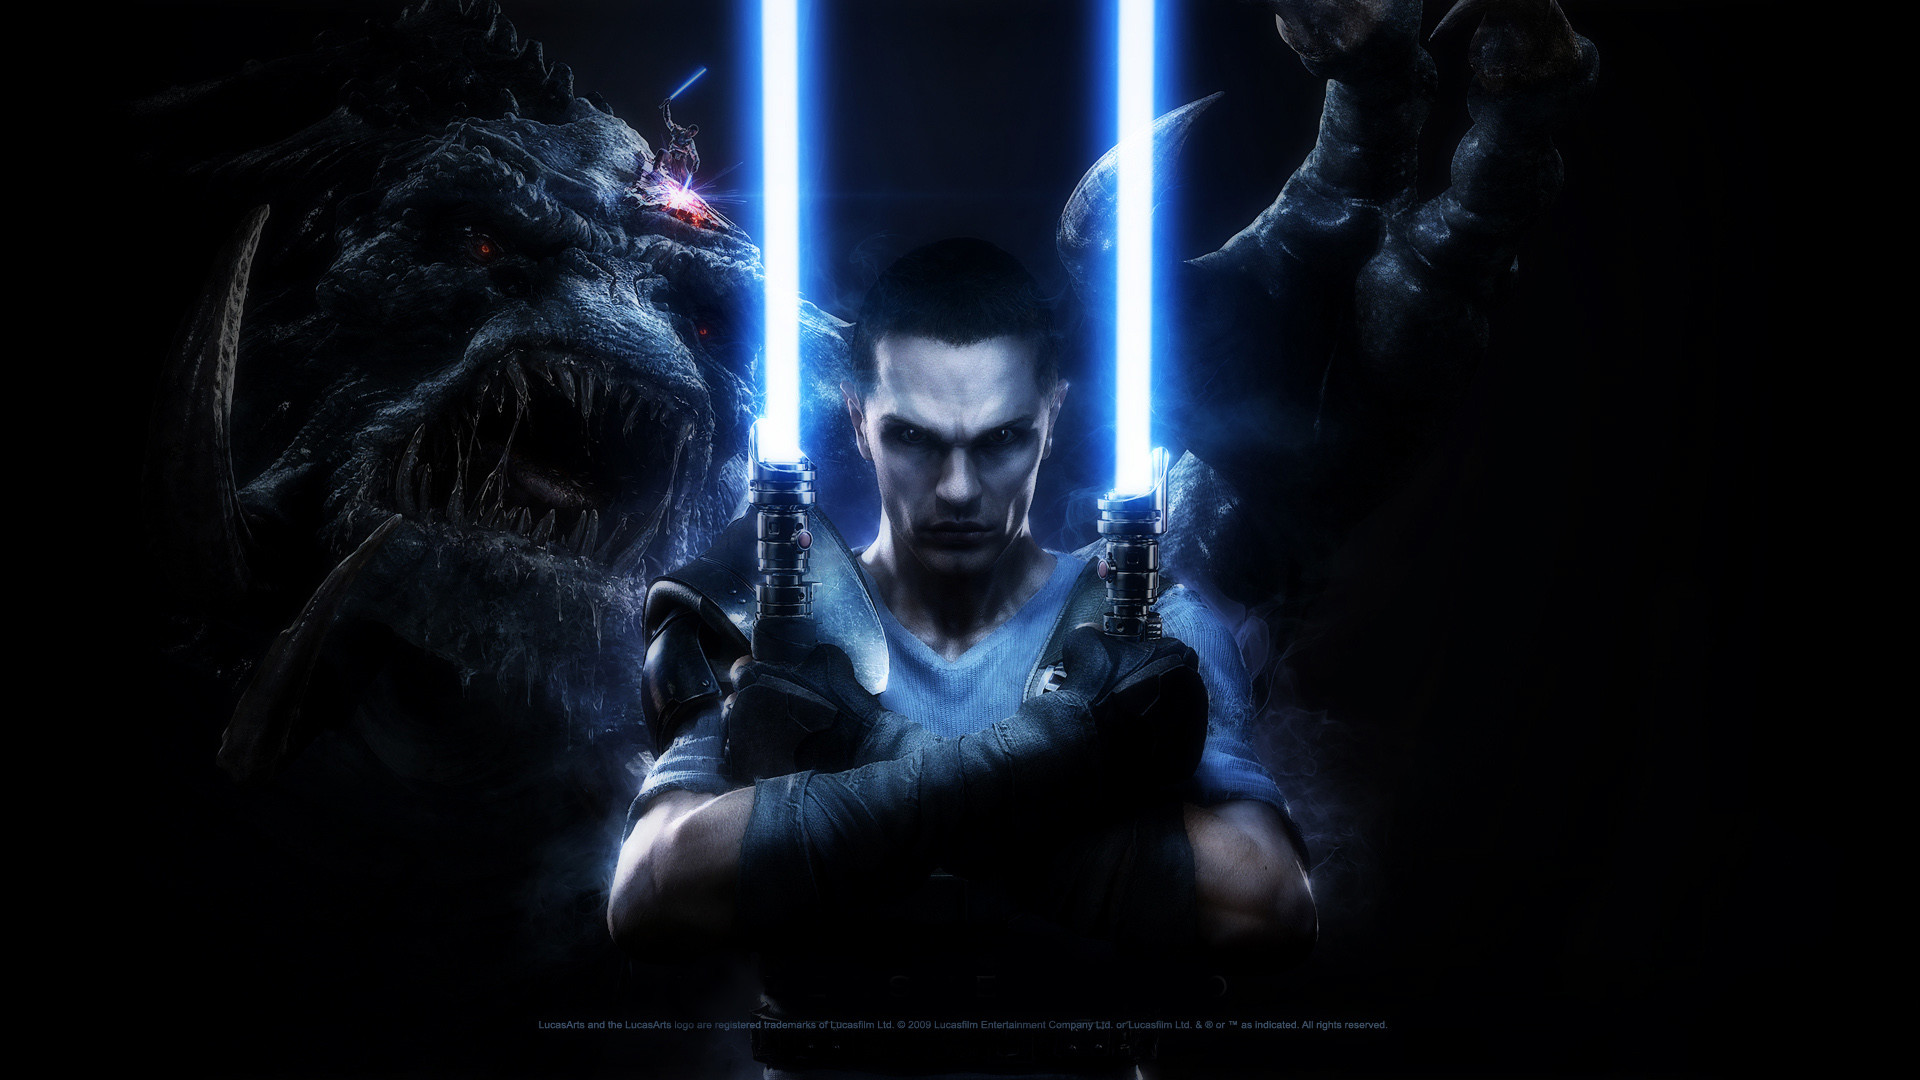 Star Wars Unleashed Wallpapers | HD Wallpapers